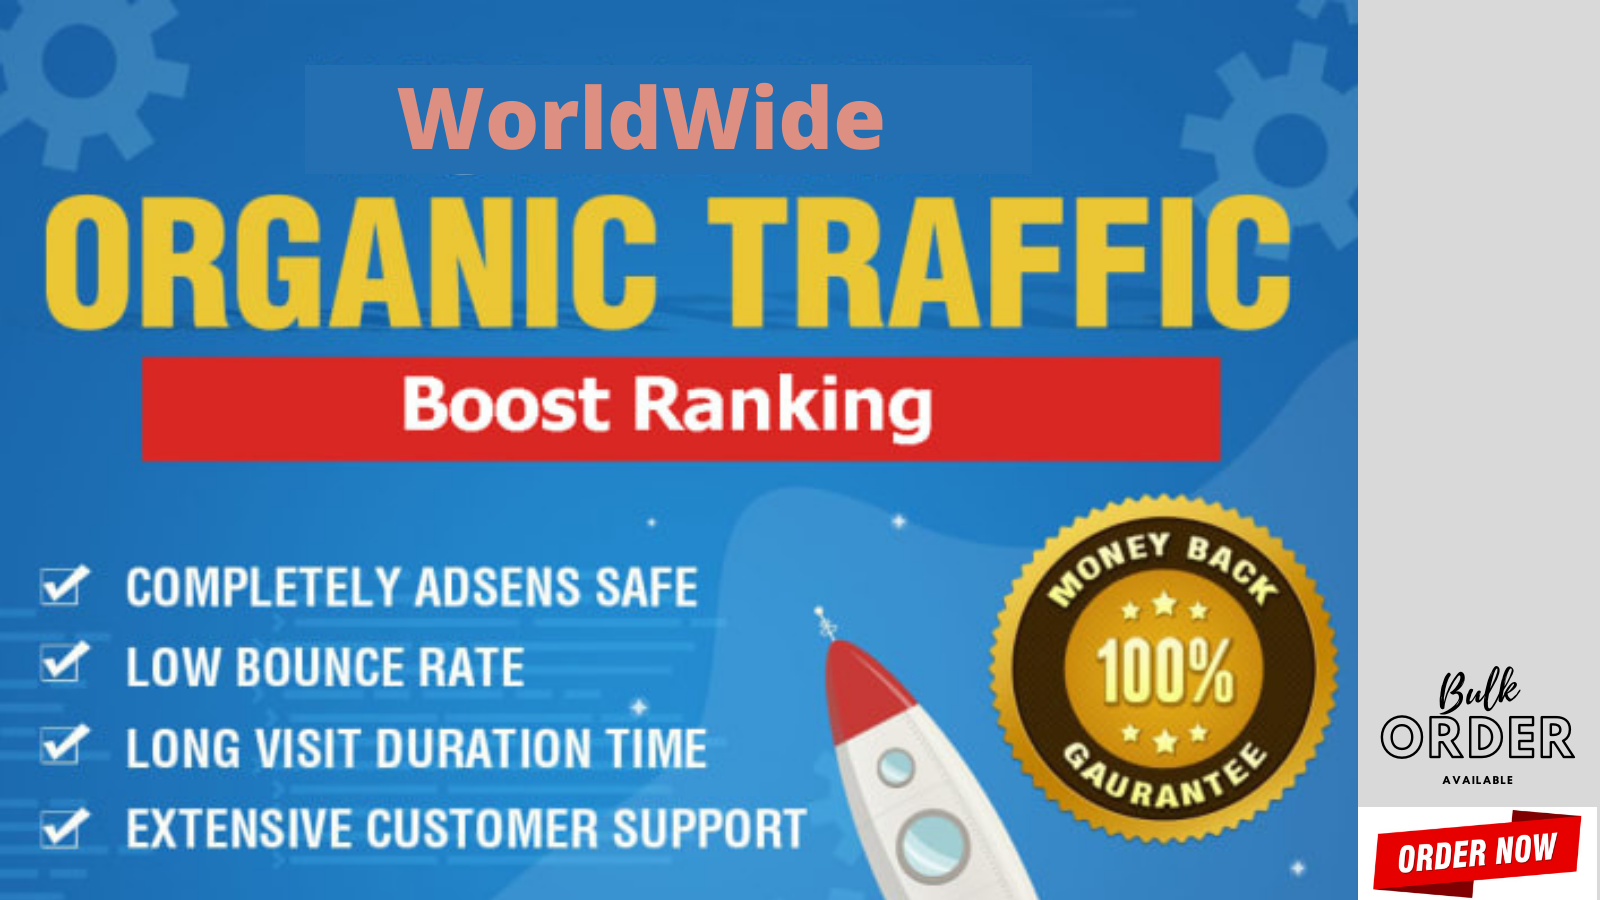 Worldwide Website Visitors Now Order Today to Get Bonus as well